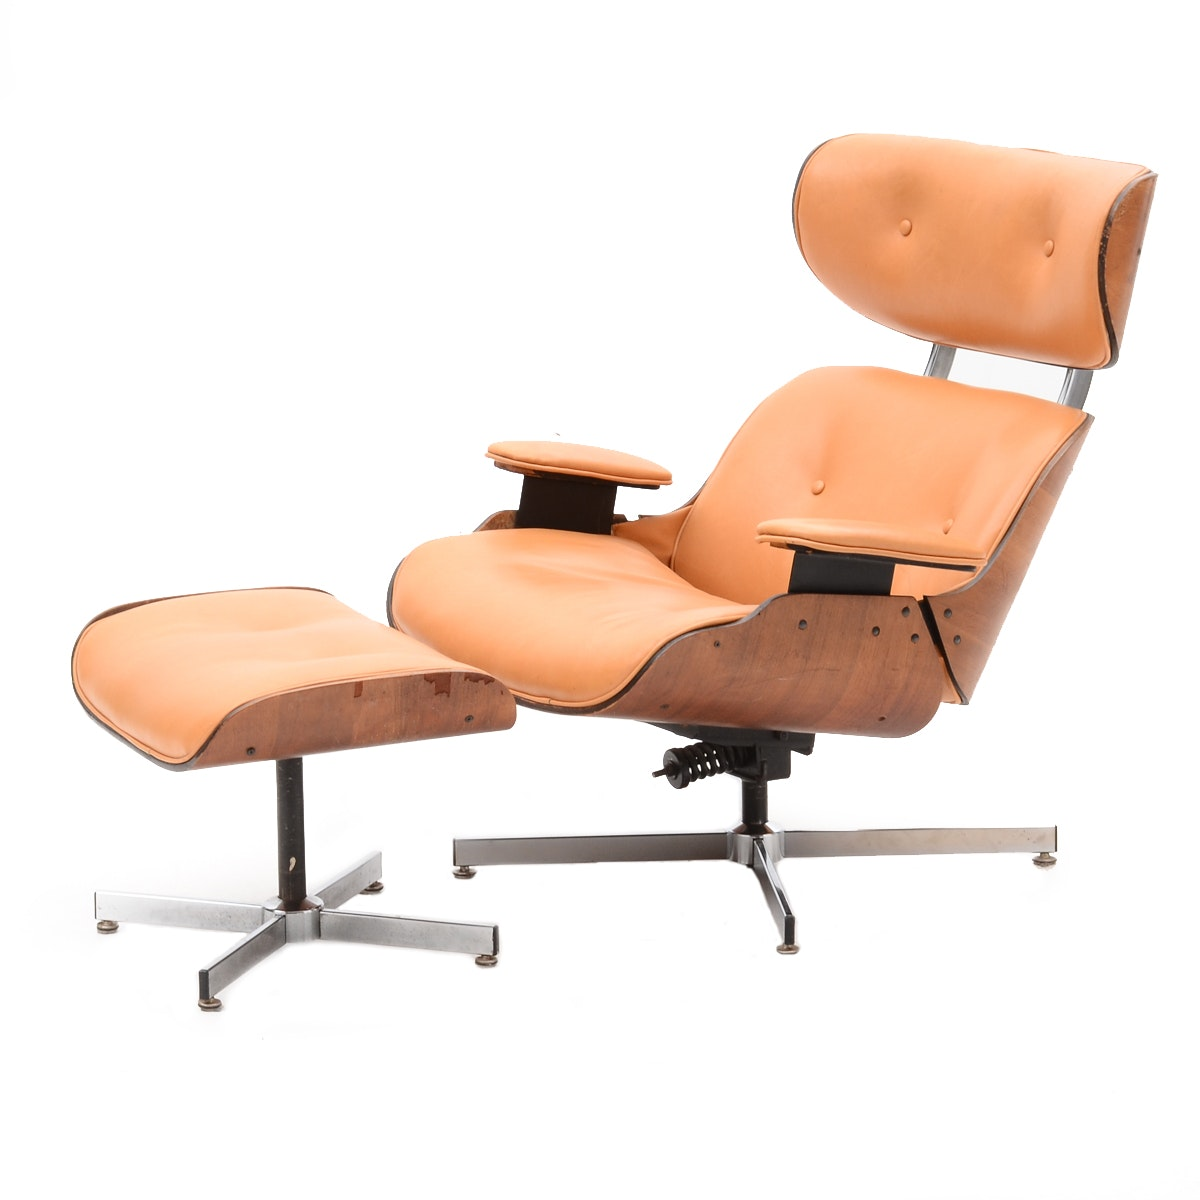 Vintage Mid Century Modern Eames Style Chair and Ottoman